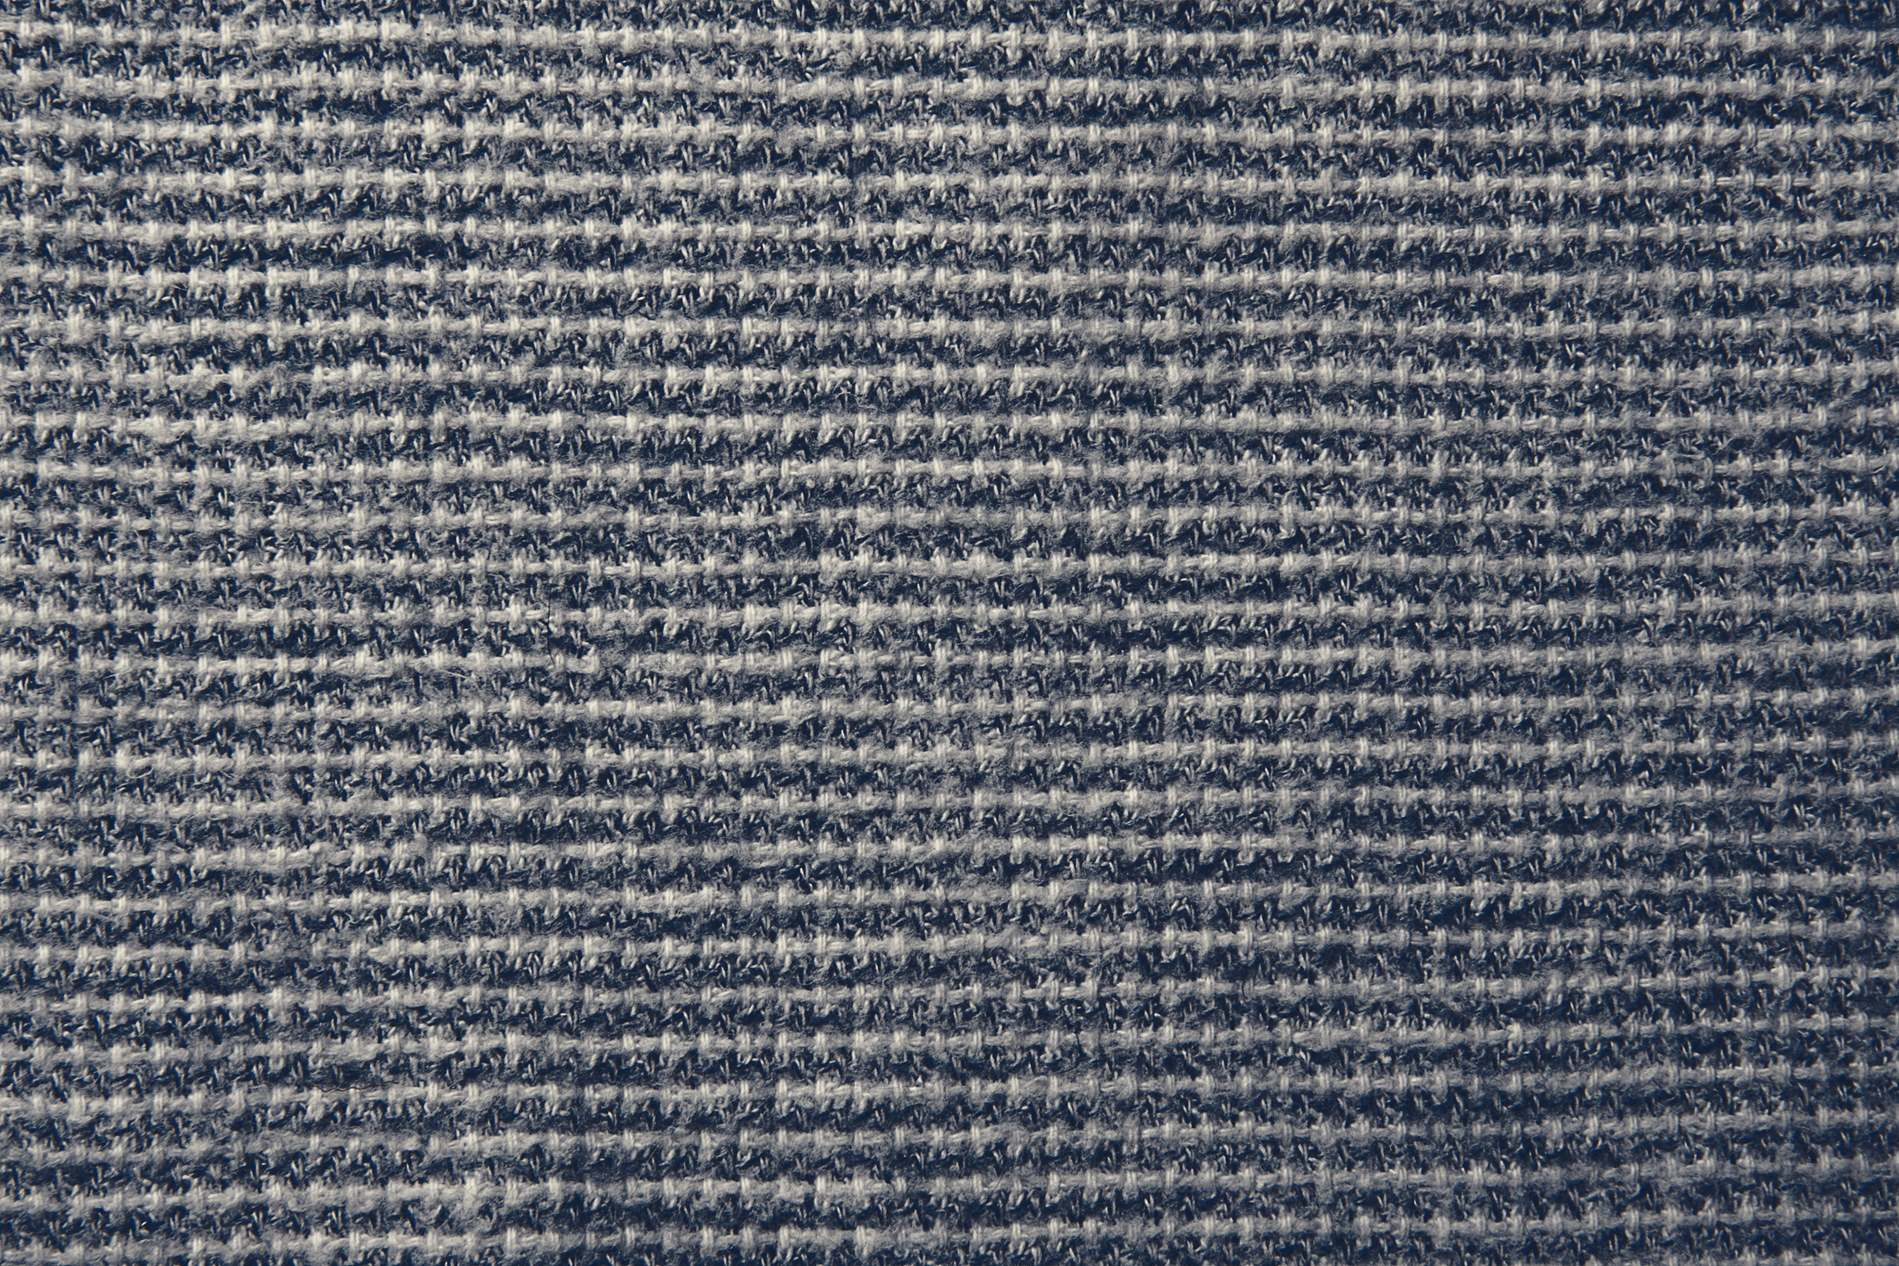 Close Up Photography Of Gray Knit Textile: Gray Close Up Fabric Texture